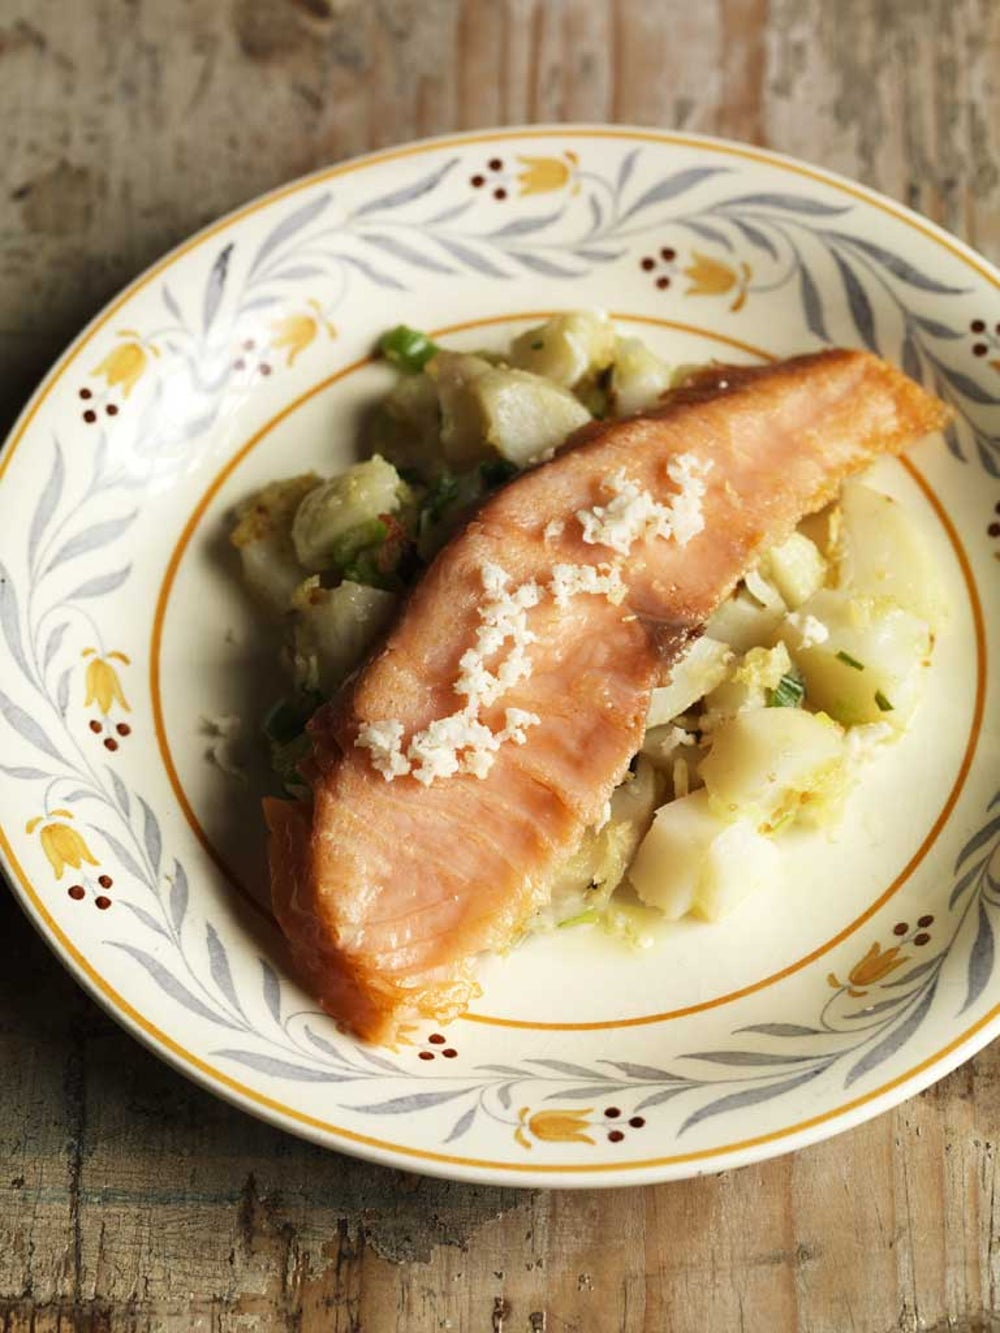 Think Pink Mark Hix S Simple Smoked Salmon Recipes Are Perfect For